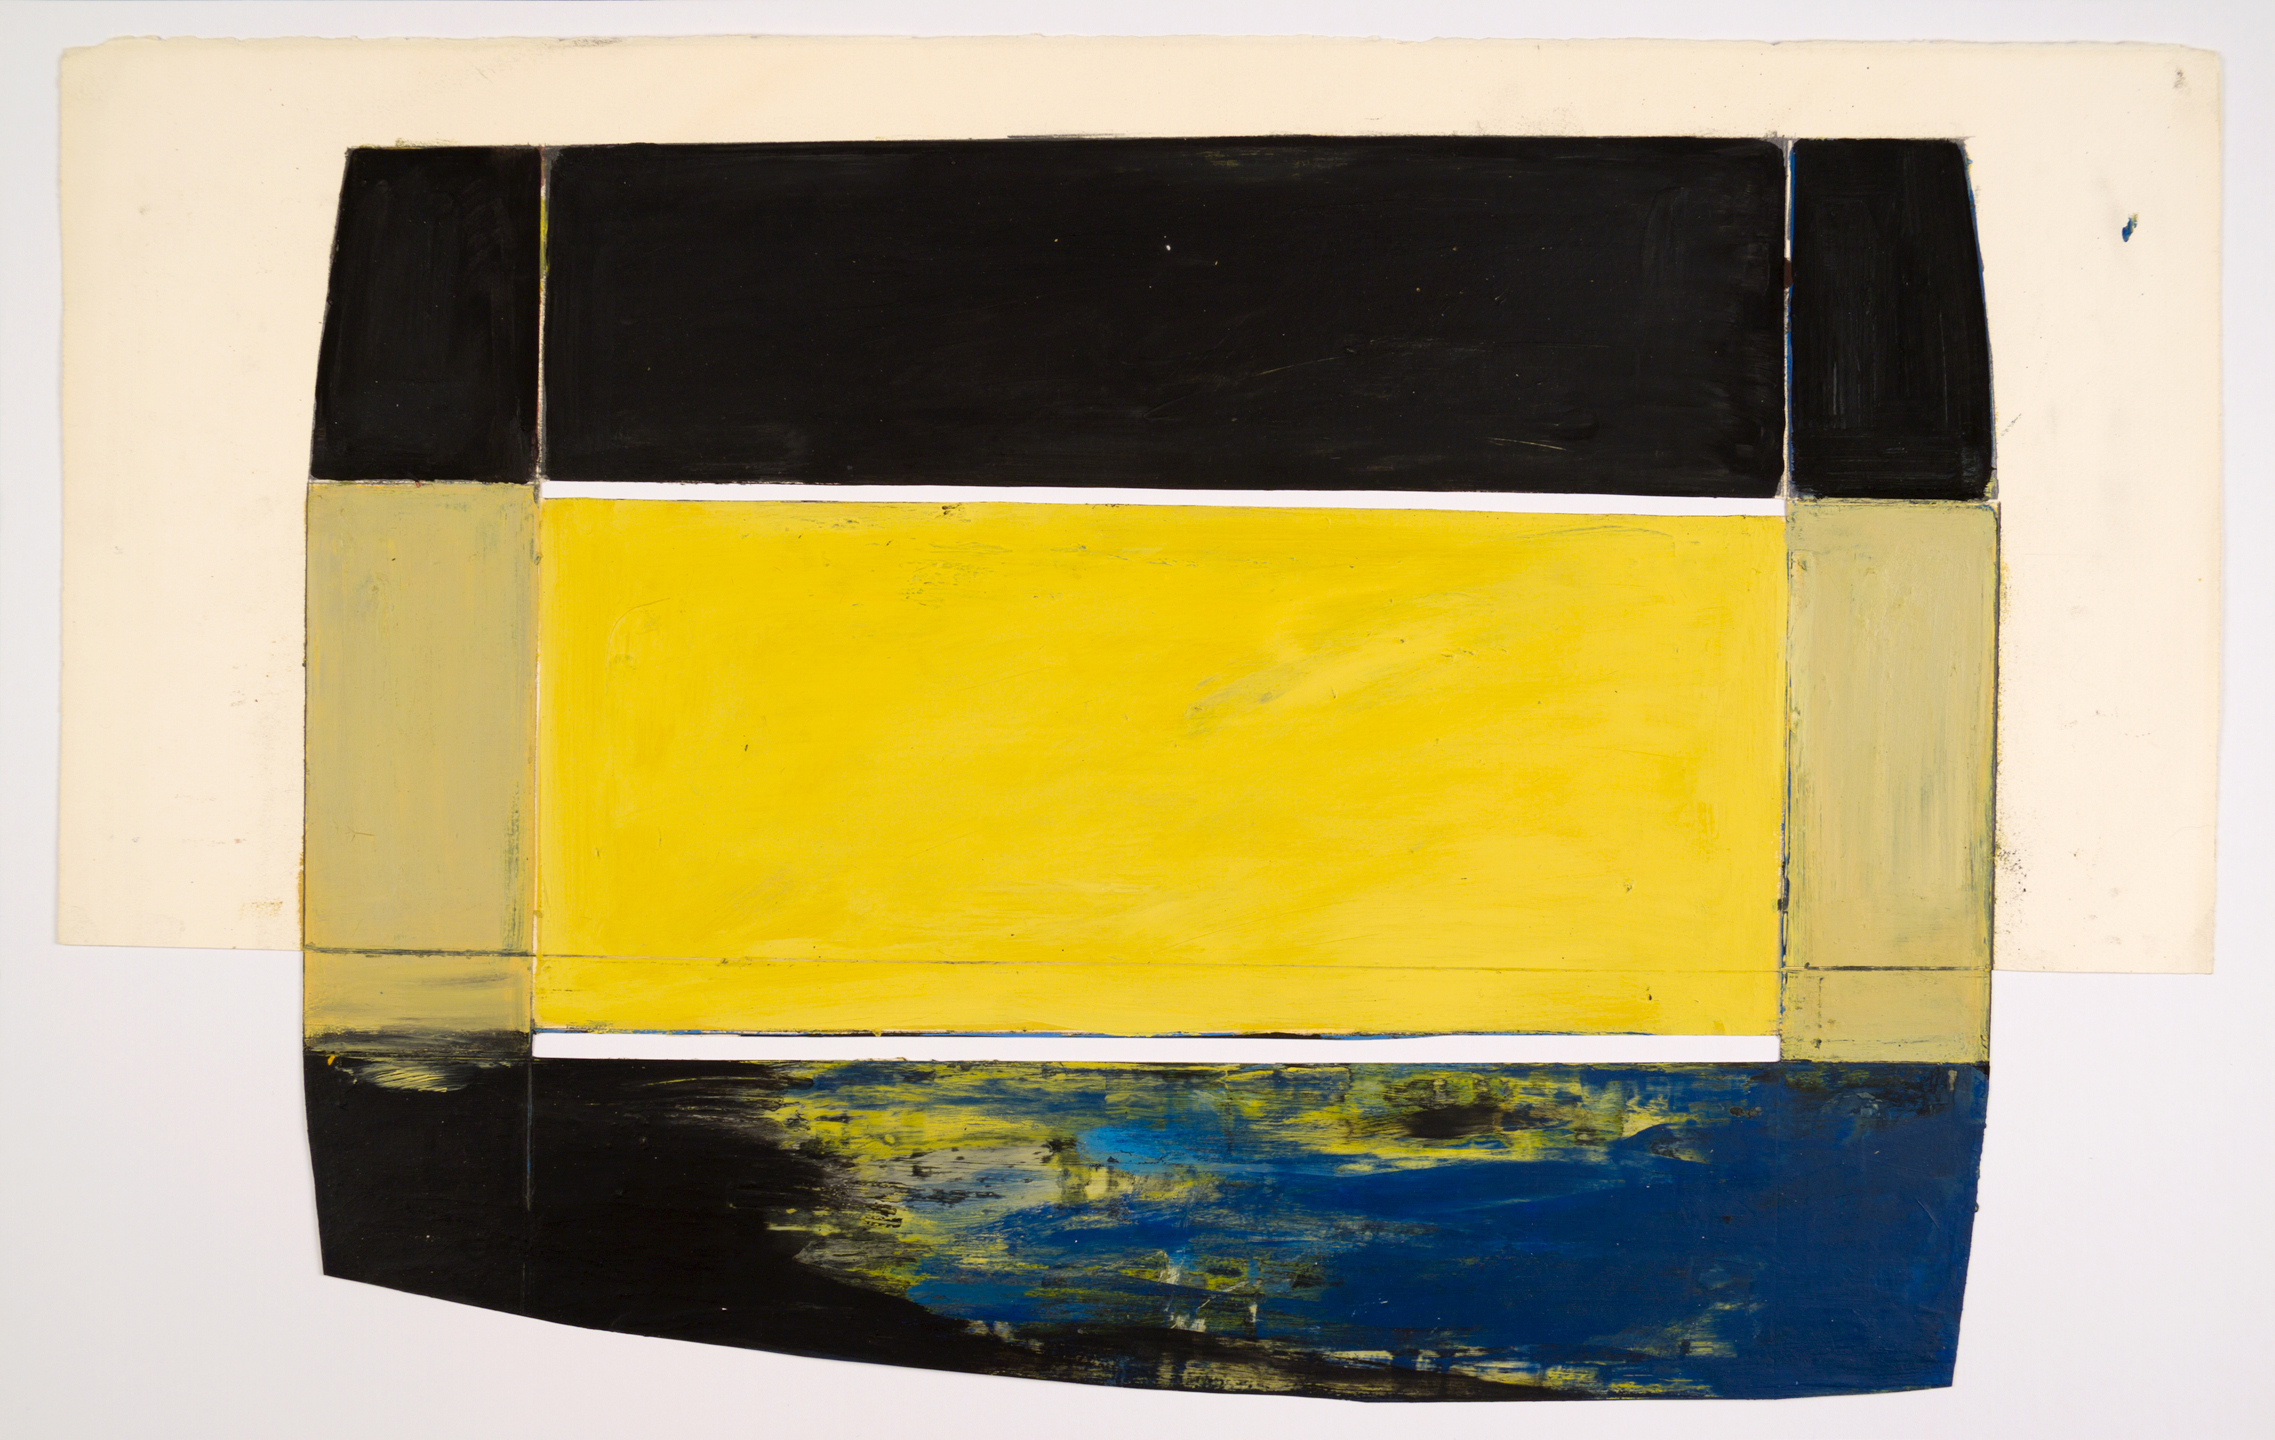 Bridge, 1975, oil and wax on paper 13 x 22 in.